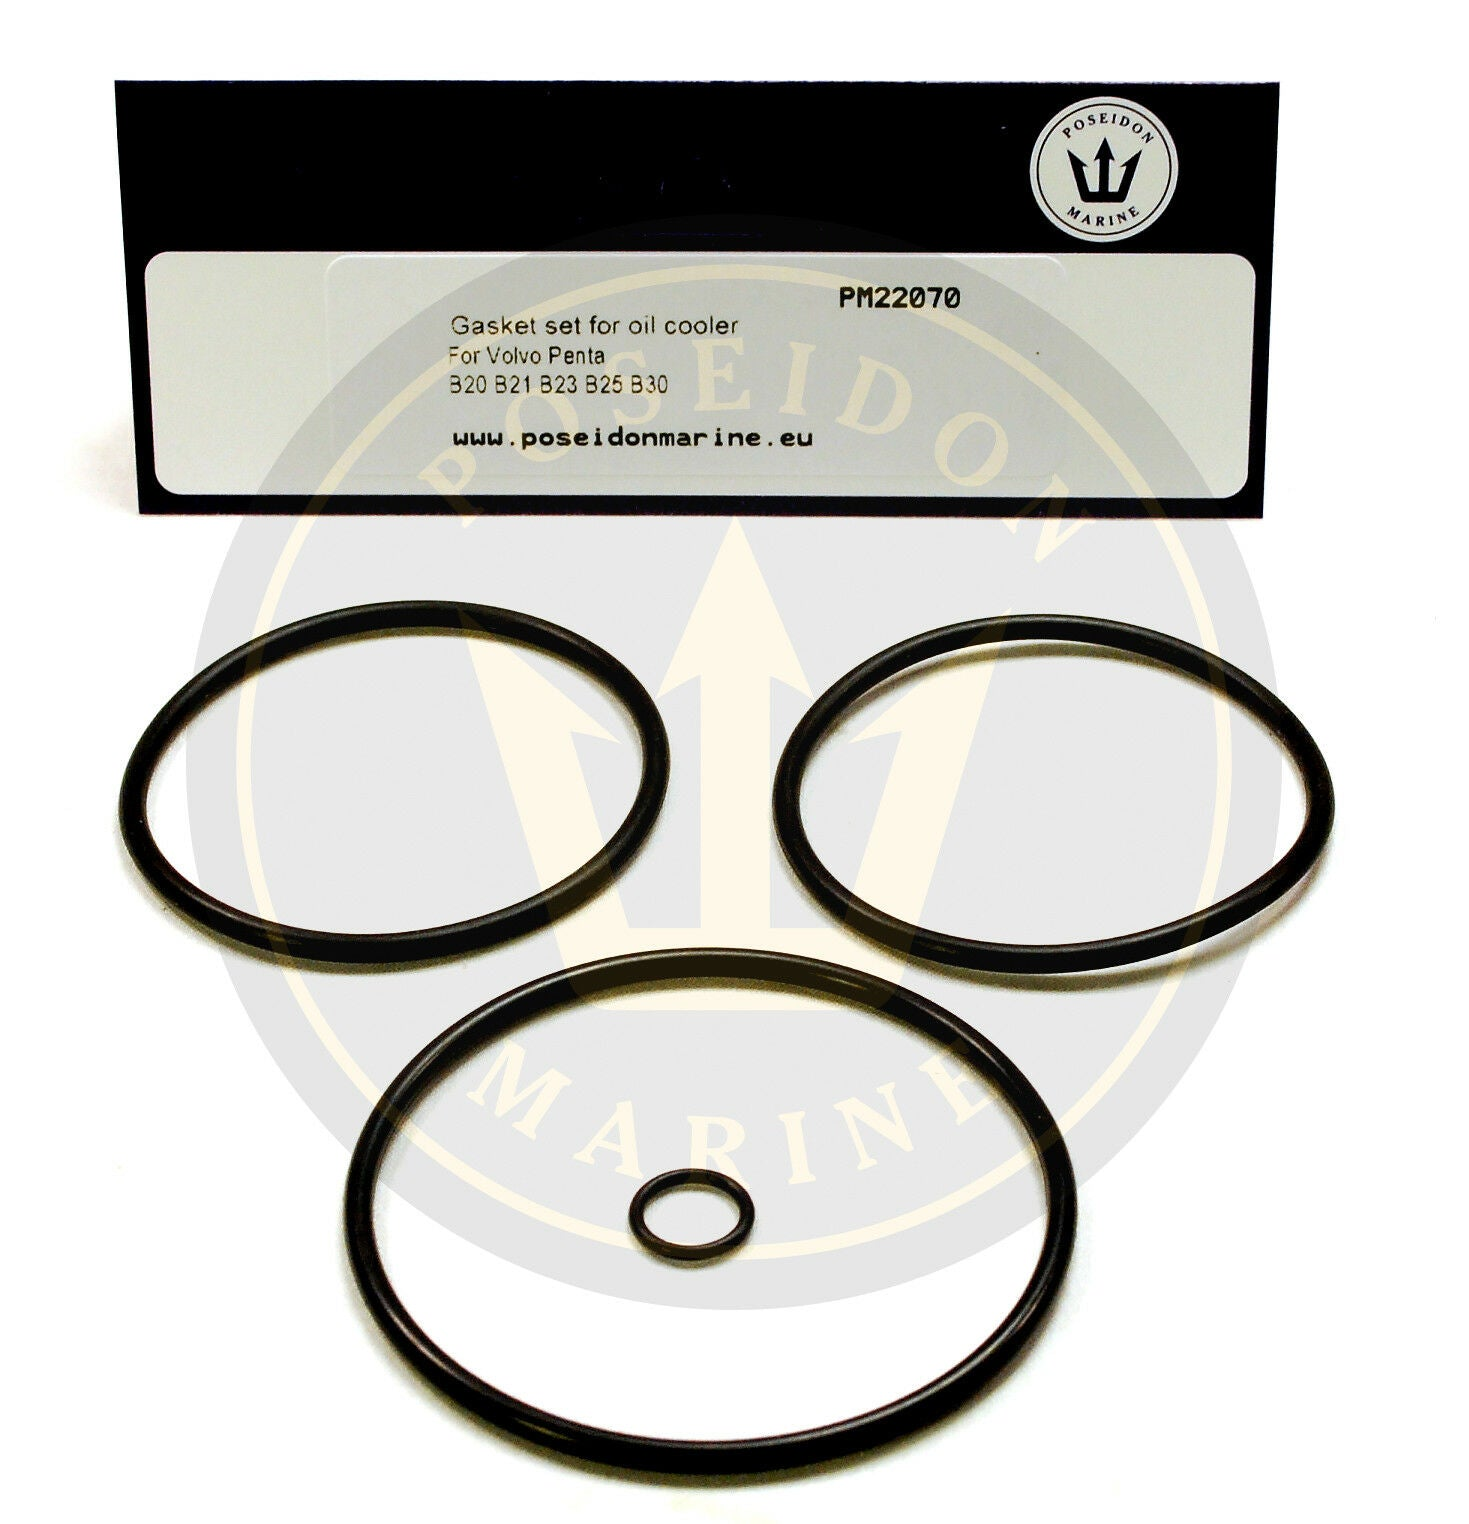 Oil cooler seal kit for Volvo Penta AQ120 AQ130 AQ140 AQ145